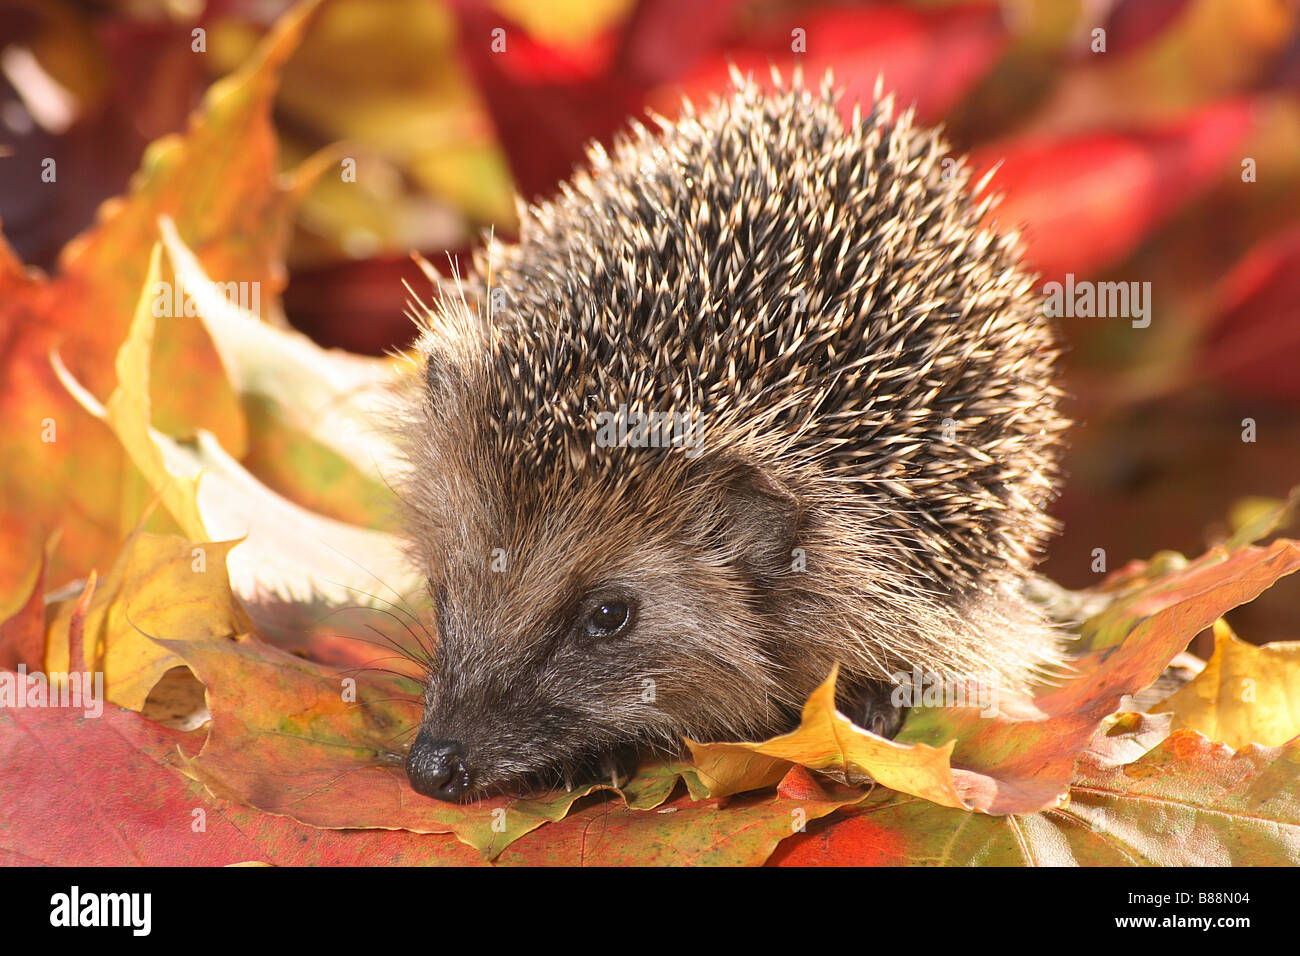 European Hedgehog (Erinaceus europaeus) in autumn leaves - Stock Image